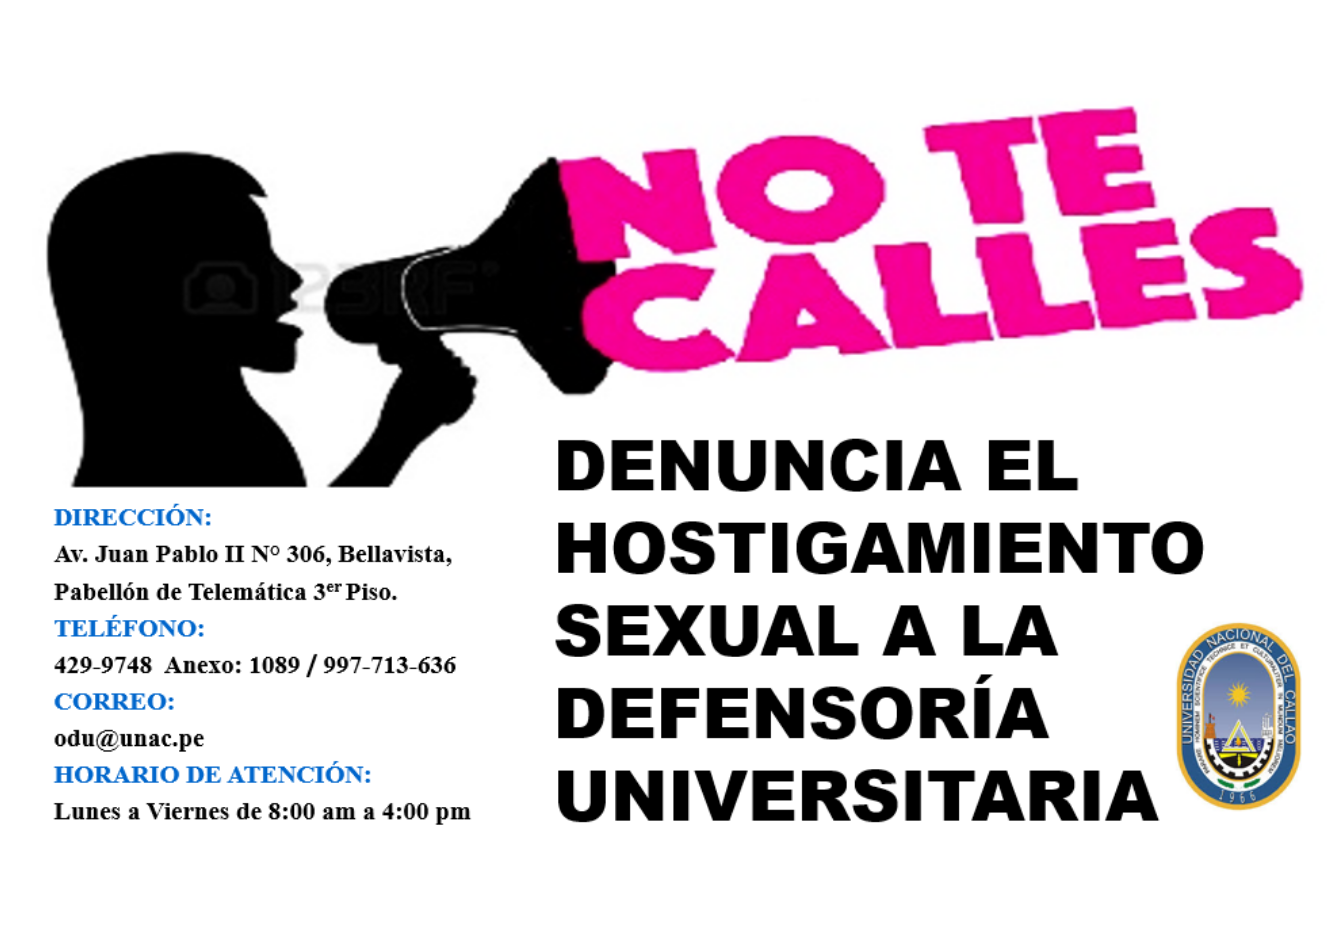 Denuncia Hostigamiento Sexual